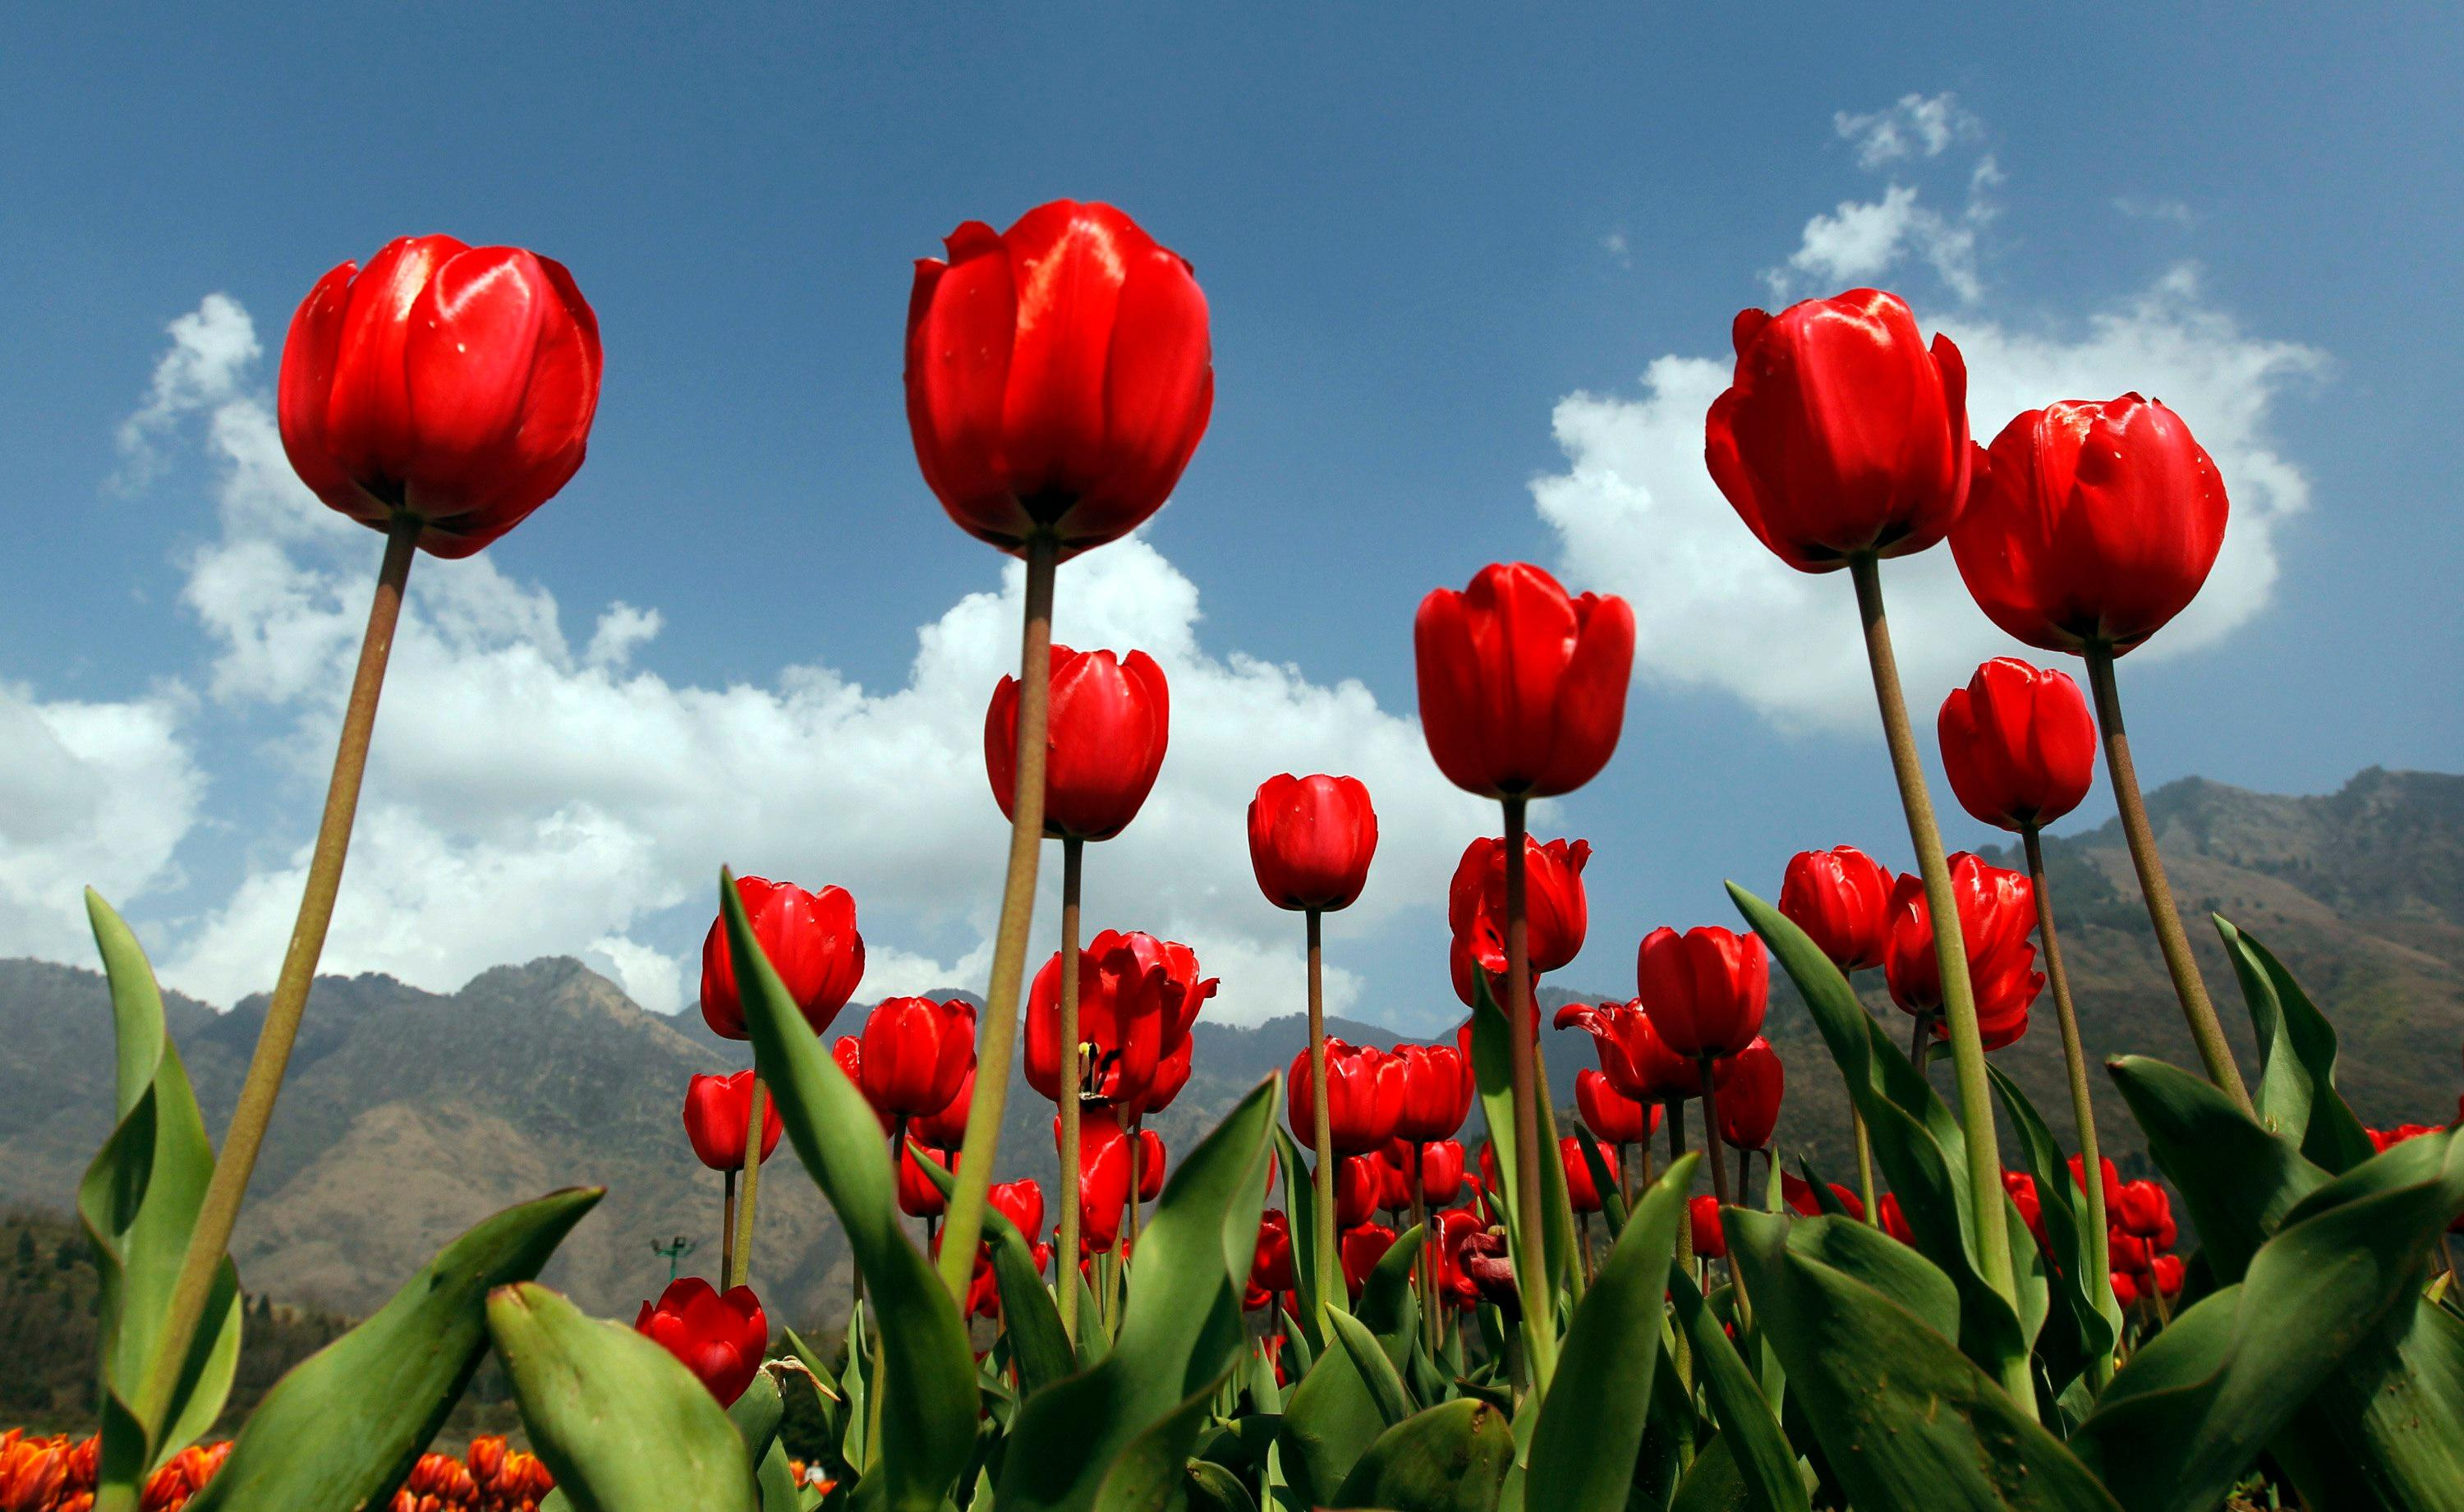 What links Tulip, Carnation, Bulldozer and Jeans? The Weekend quiz